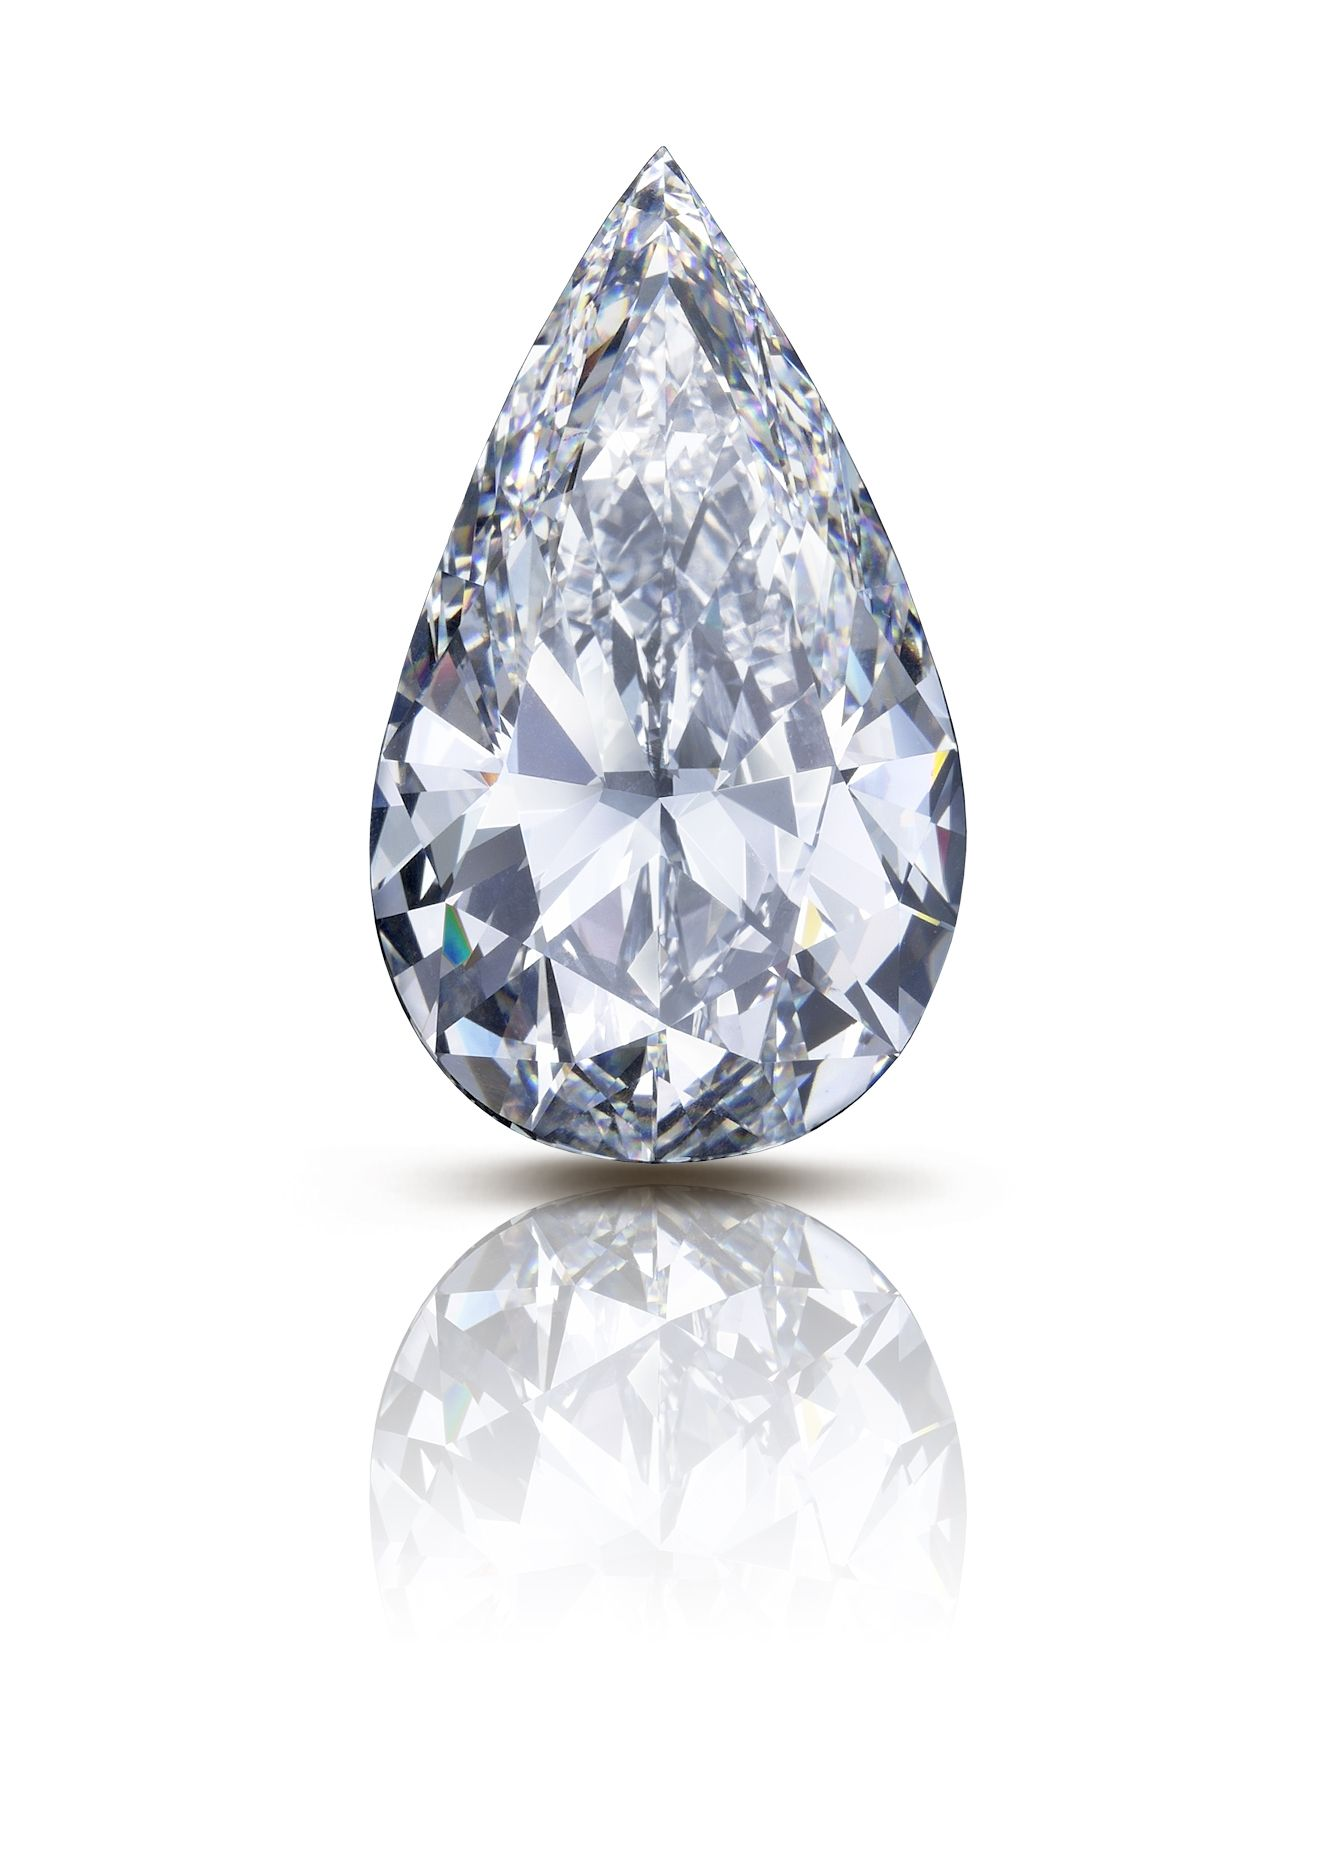 d diamonds carat flawless an diamond shaped pear the internally pin incredible graff flame